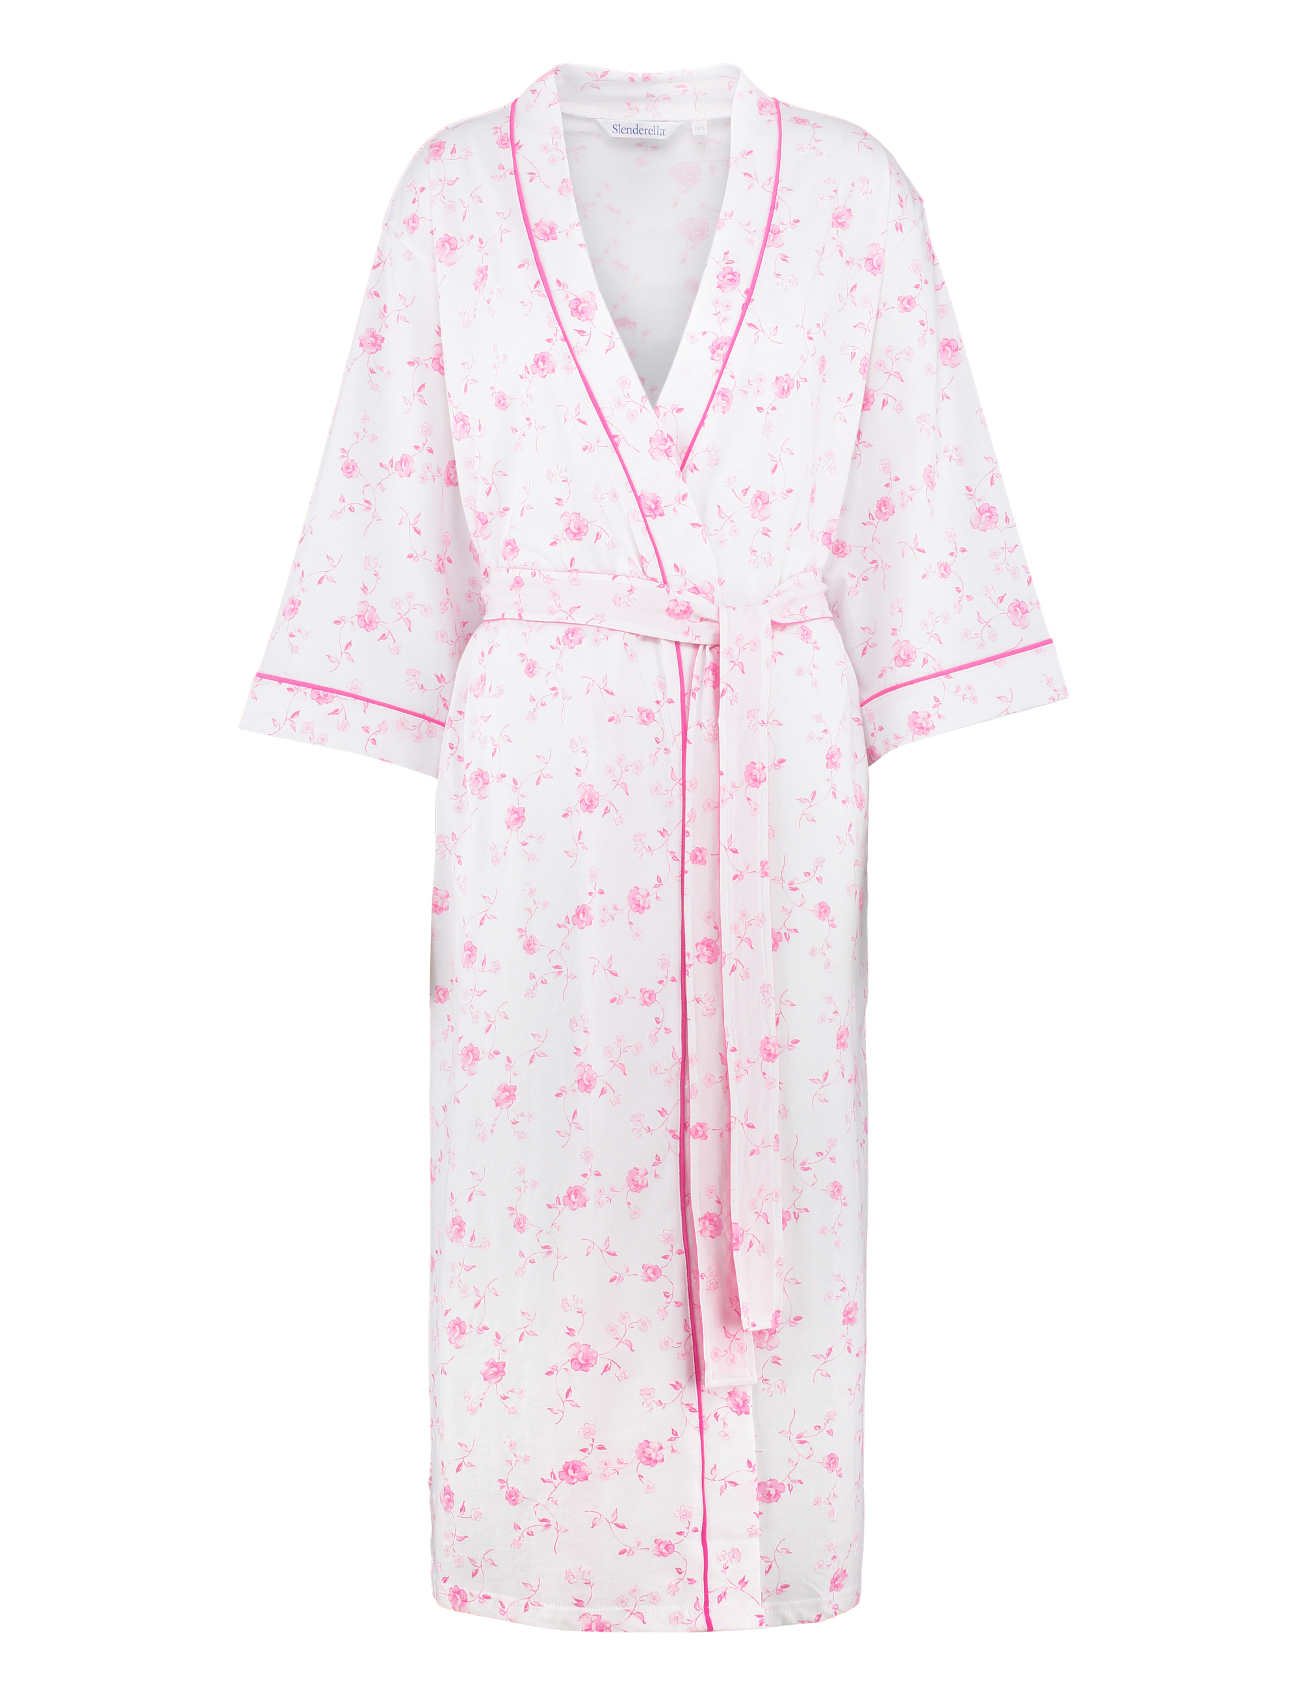 Ladies Lightweight Floral Dressing Gown 3/4 Sleeve 100% Cotton ...